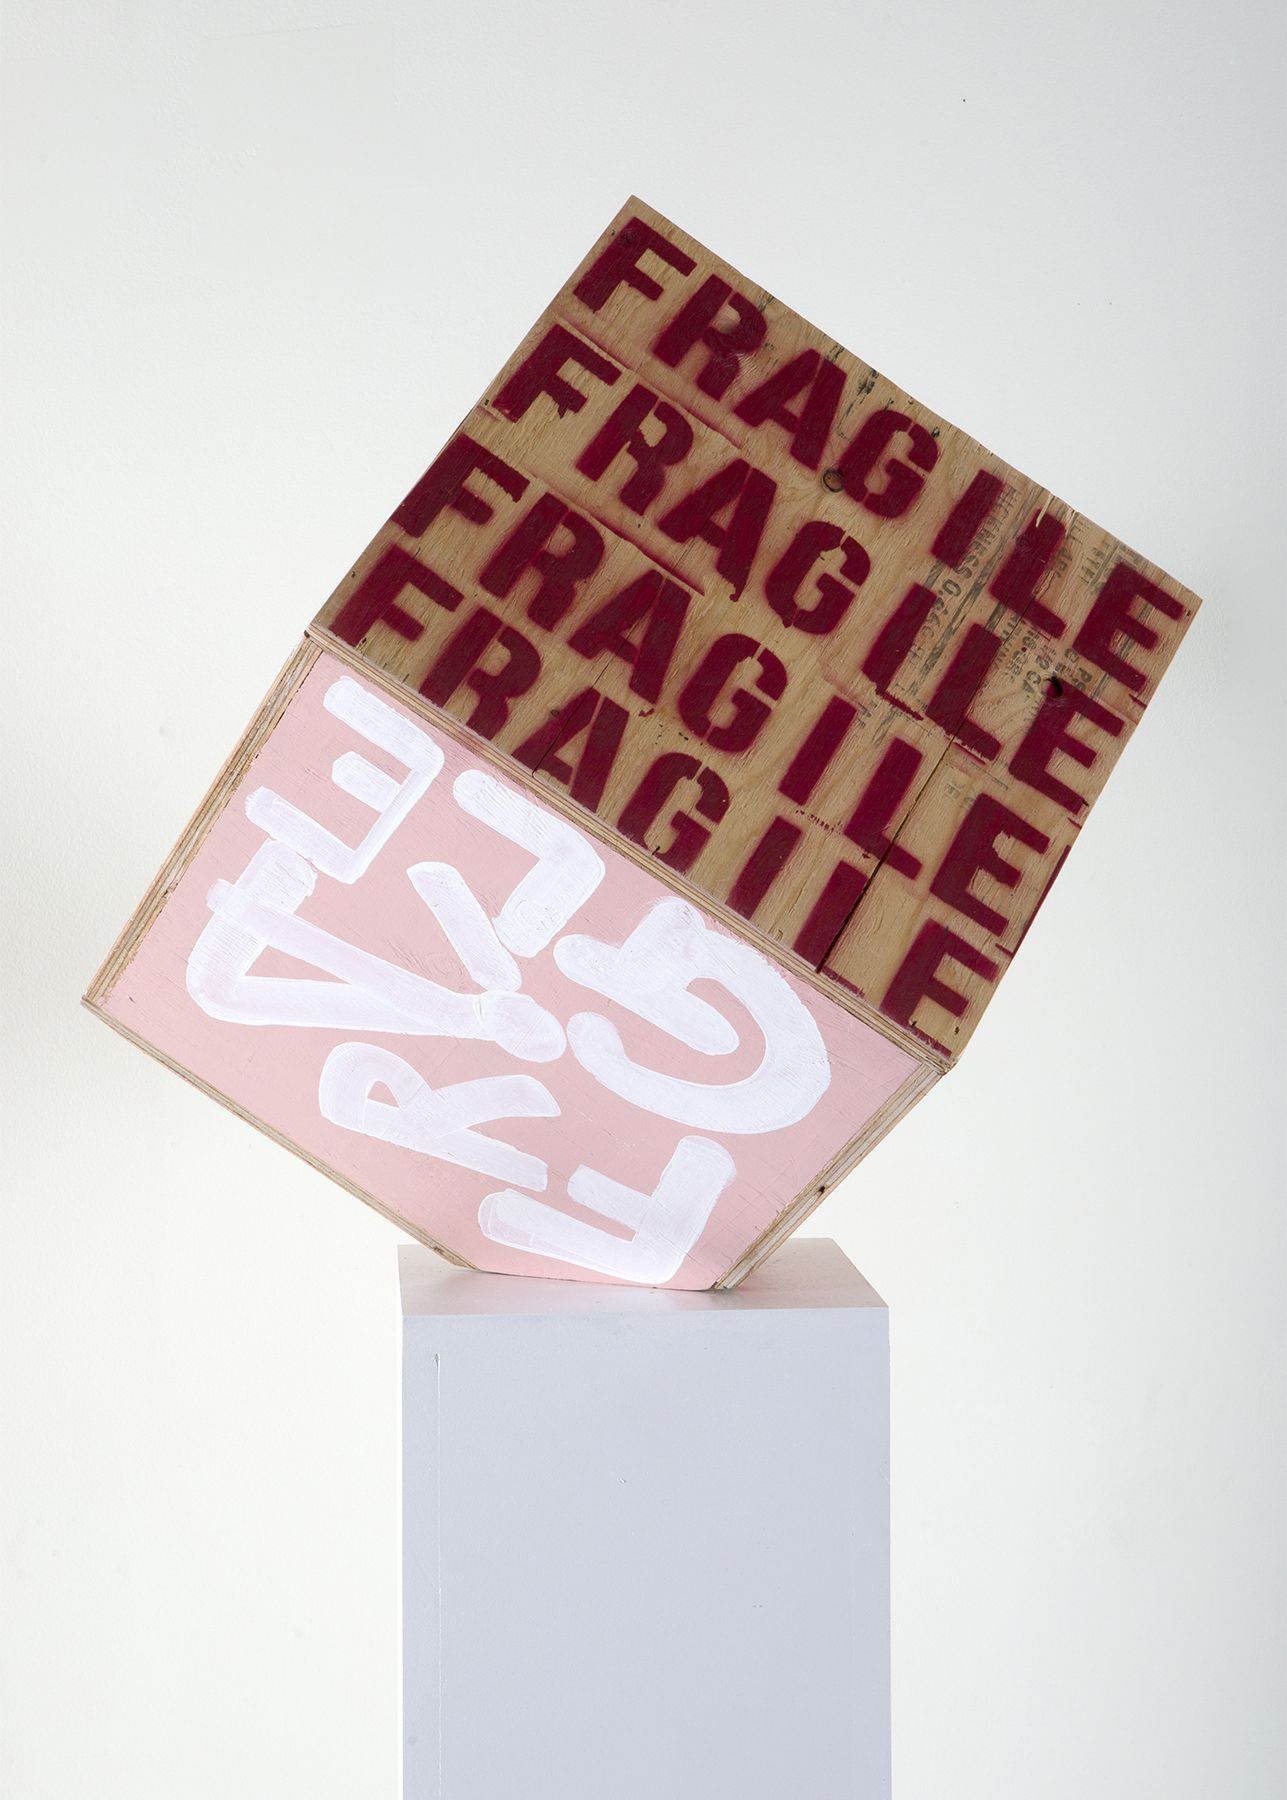 Fragile by Huê Thi Jewel The Wound